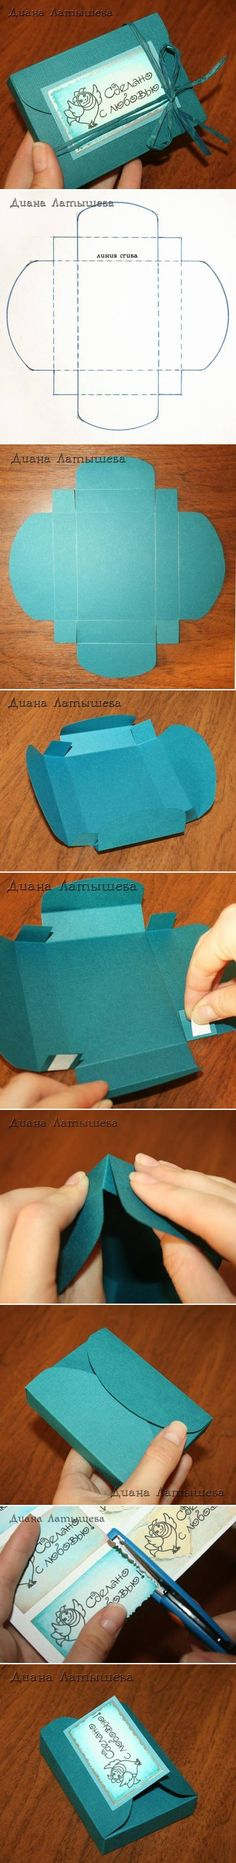 DIY Fancy Gift Box DIY Projects | UsefulDIY.com